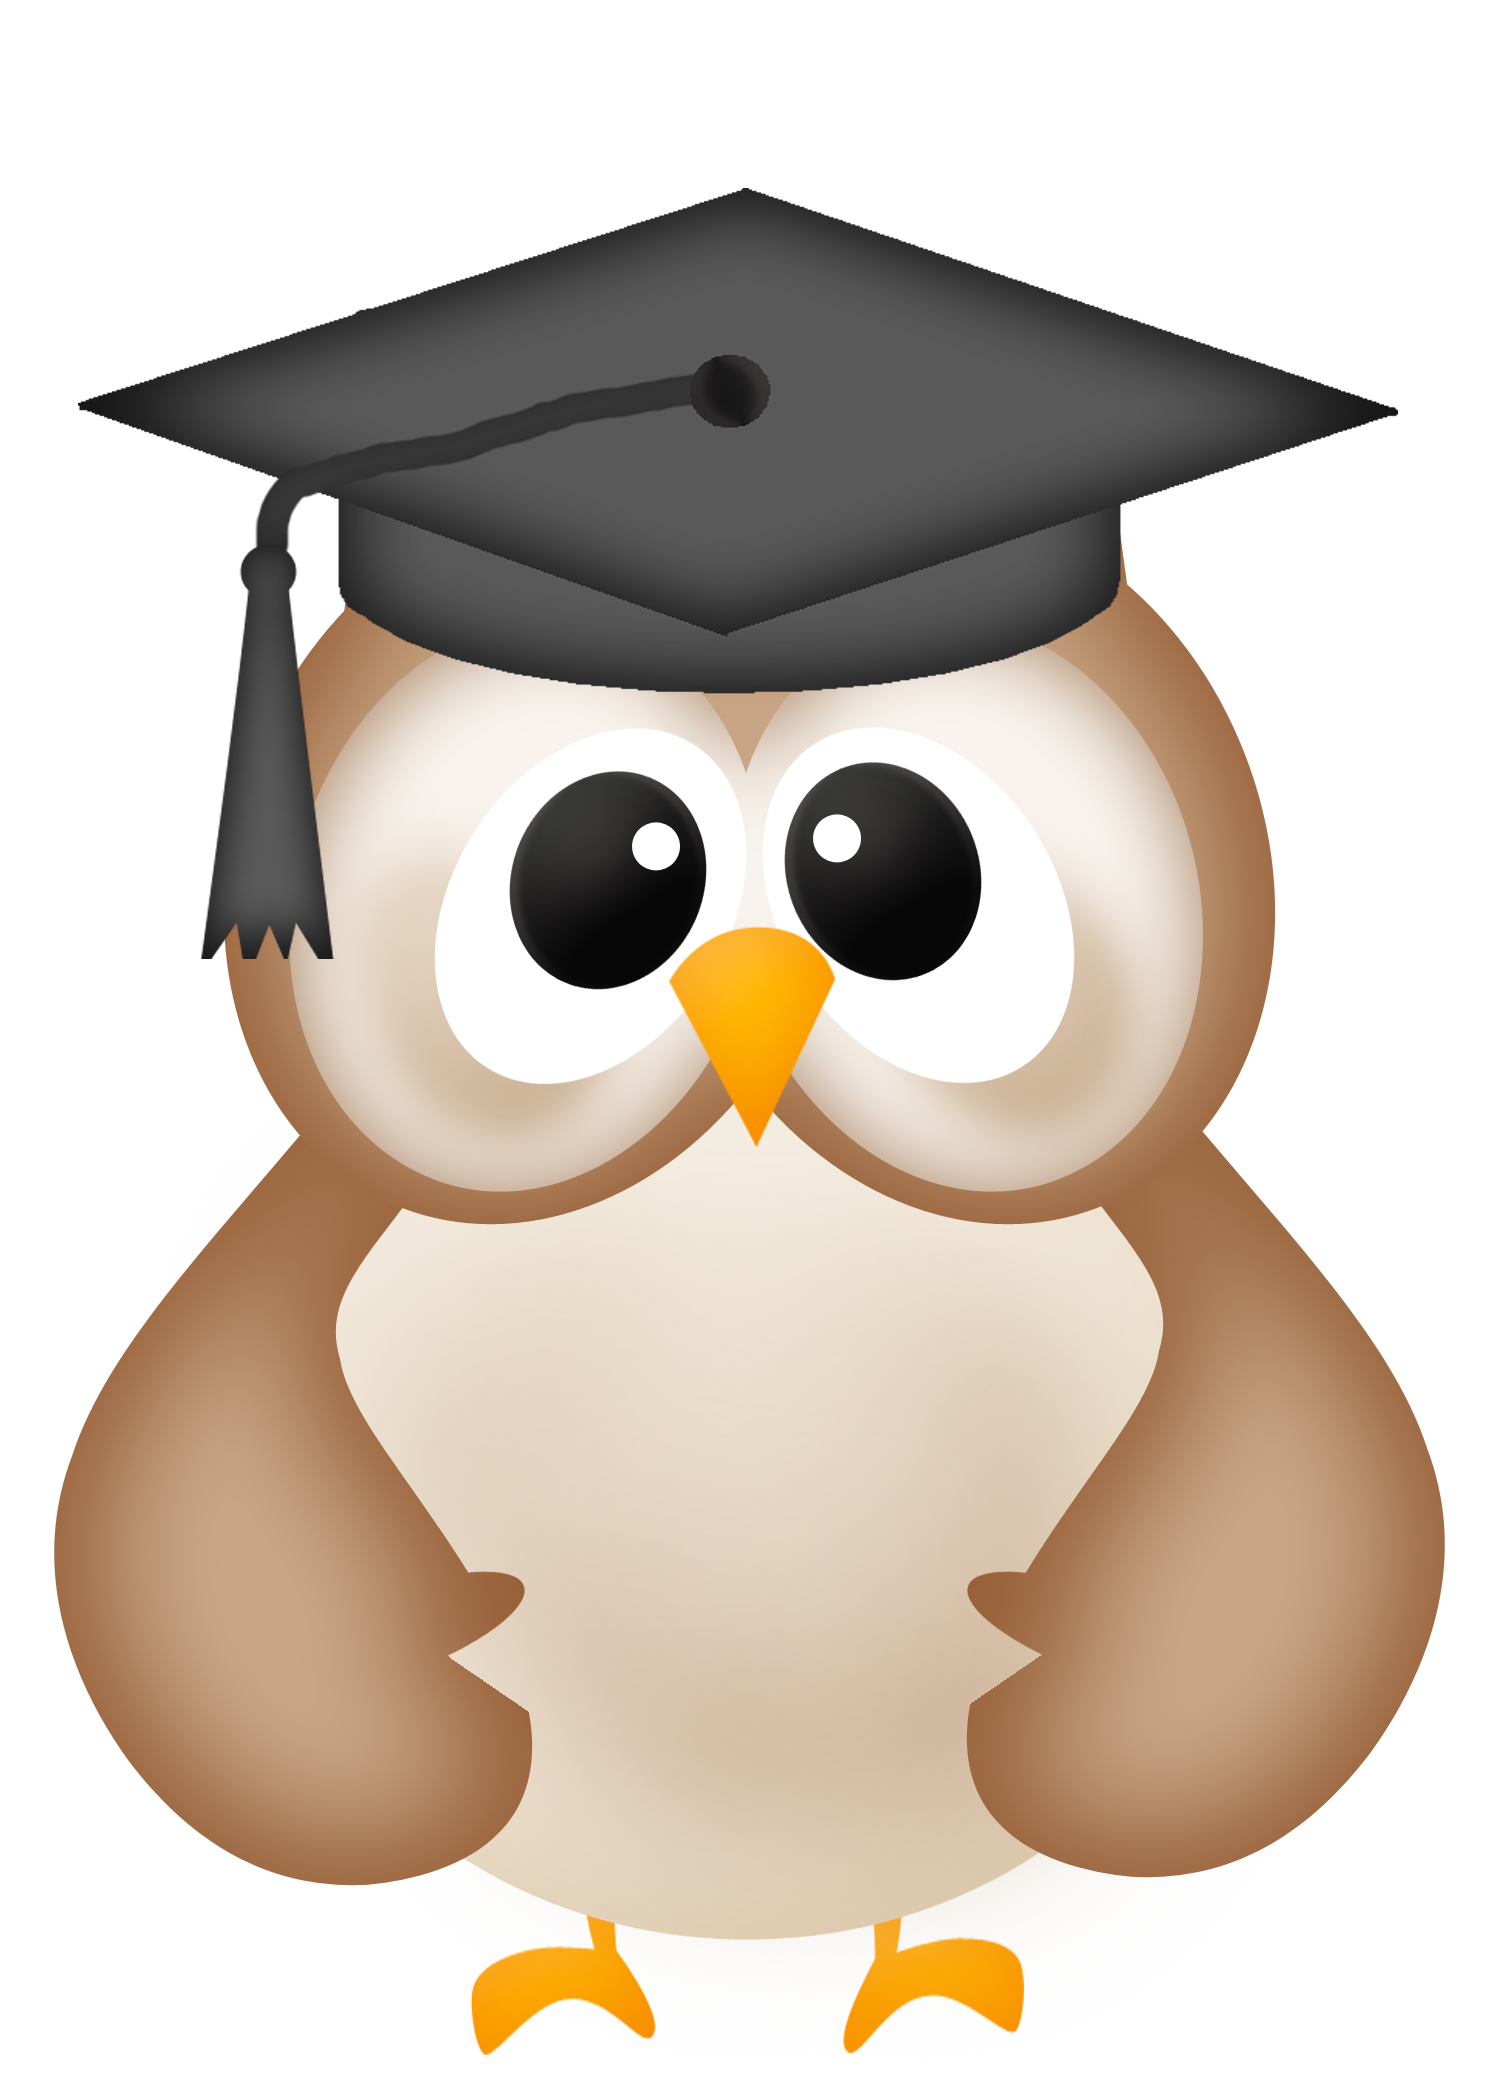 Owl panda free images. Family clipart graduation